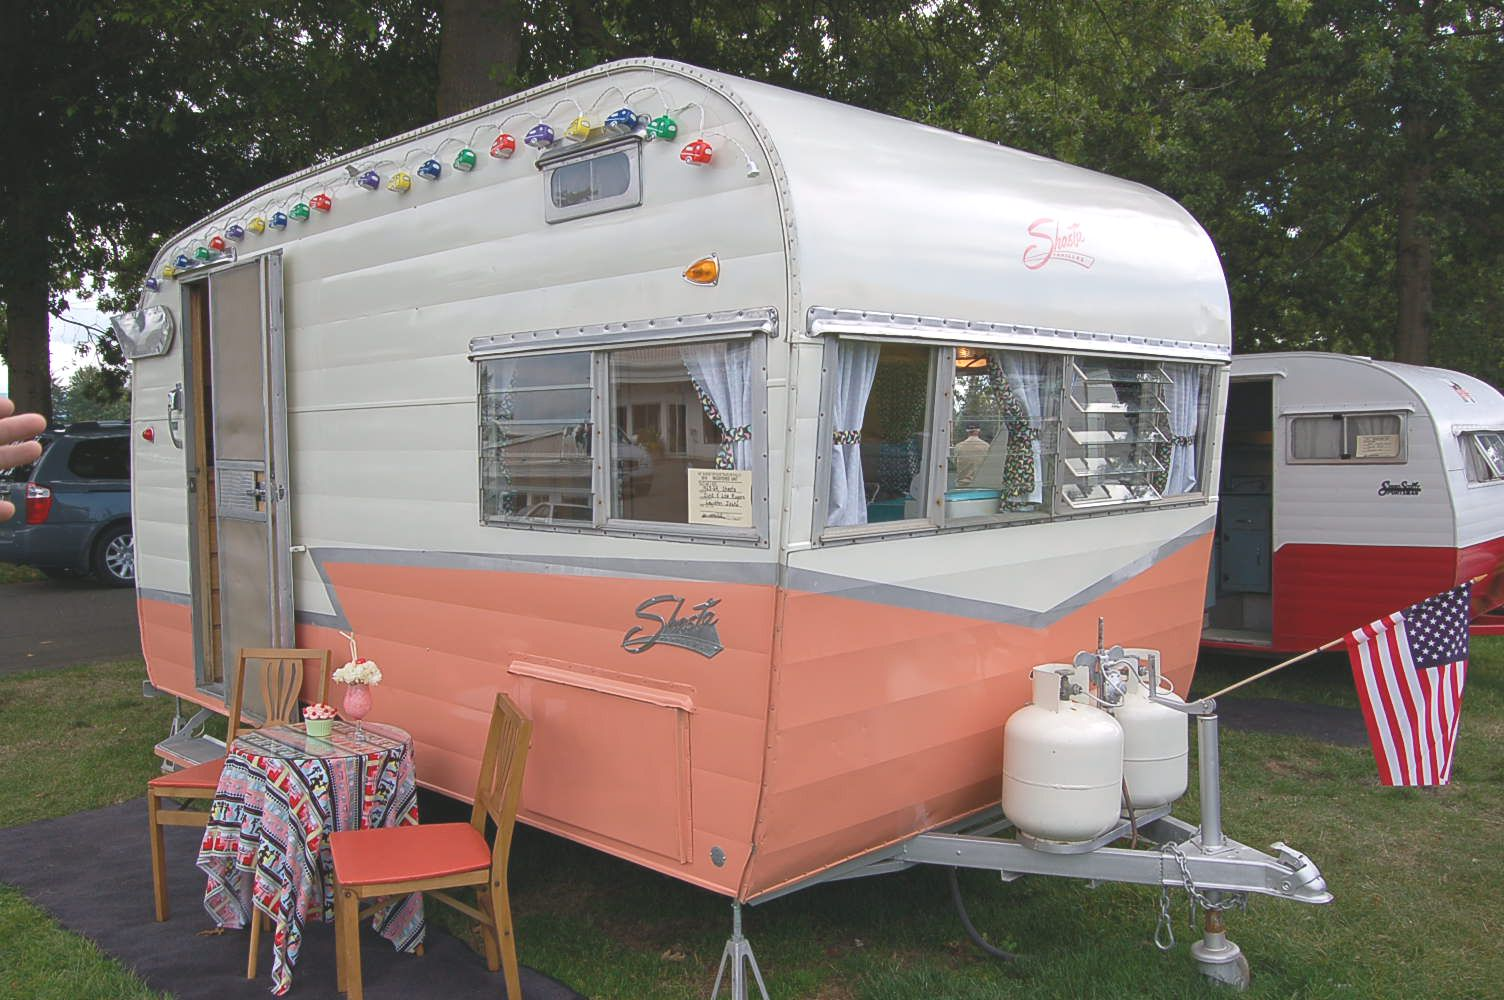 1963 Shasta Rear Entry Vintage Travel Trailer Camper Canned Ham These Look Like So Much